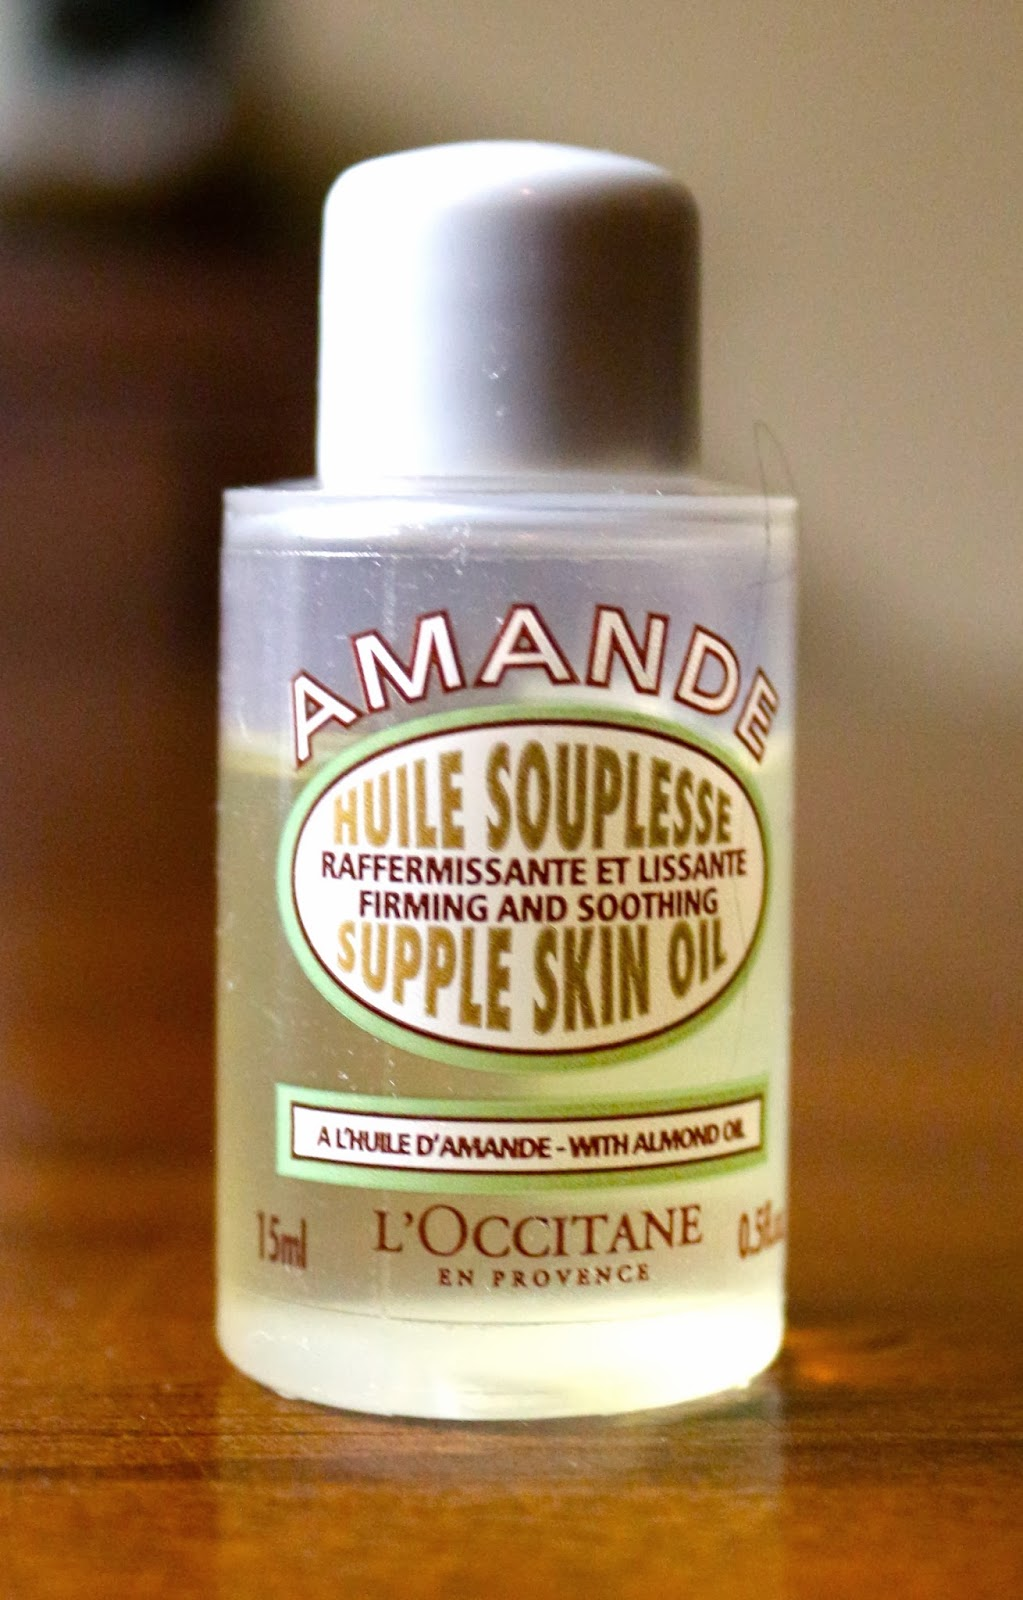 Sephora Subscription Box Reviews: L'Occitane Amande (Almond) Supple